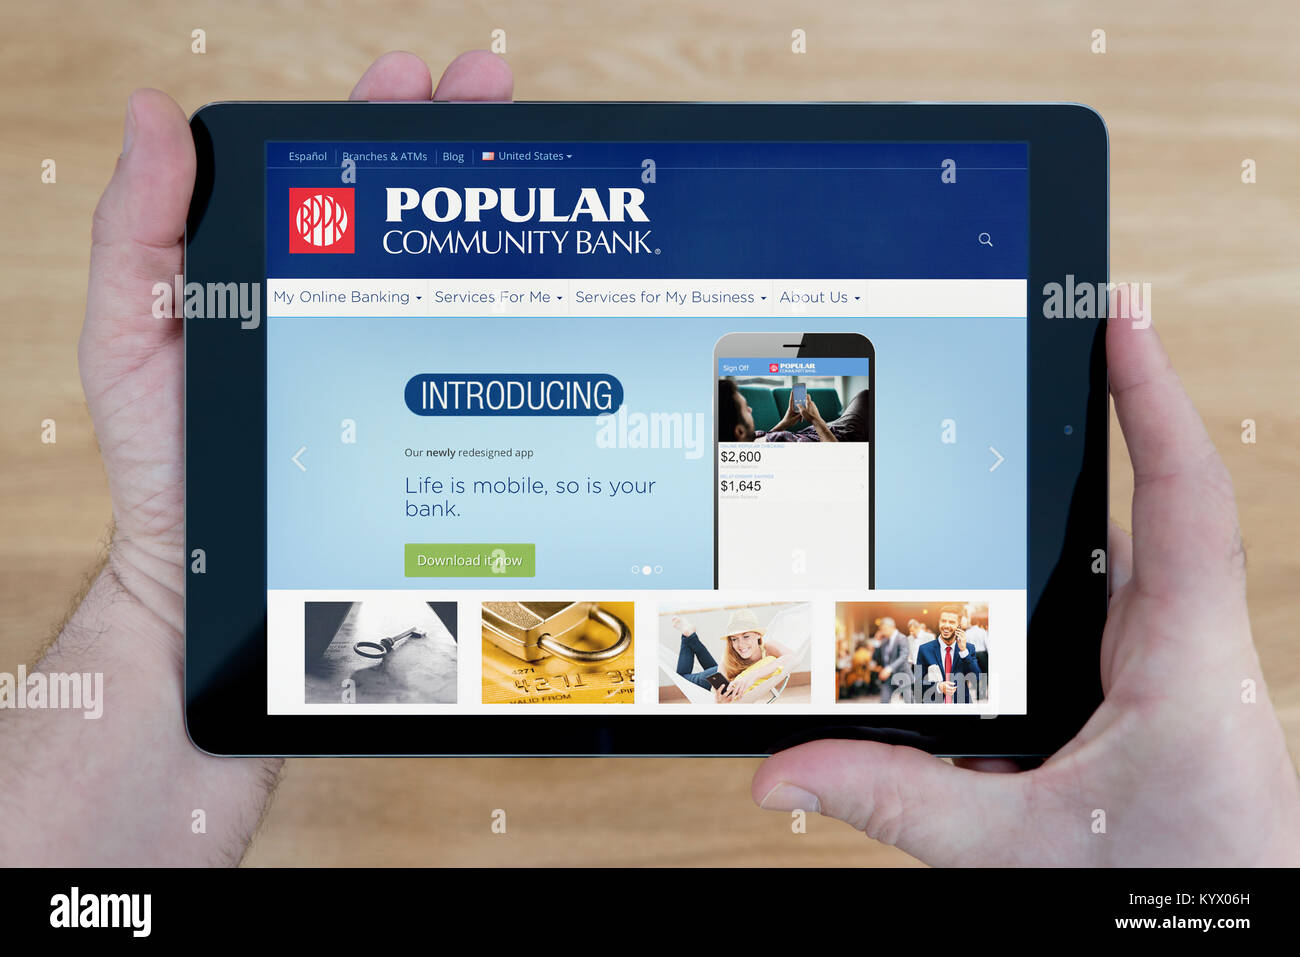 A man looks at the Popular Community Bank website on his iPad tablet device, with a wooden table top background - Stock Image